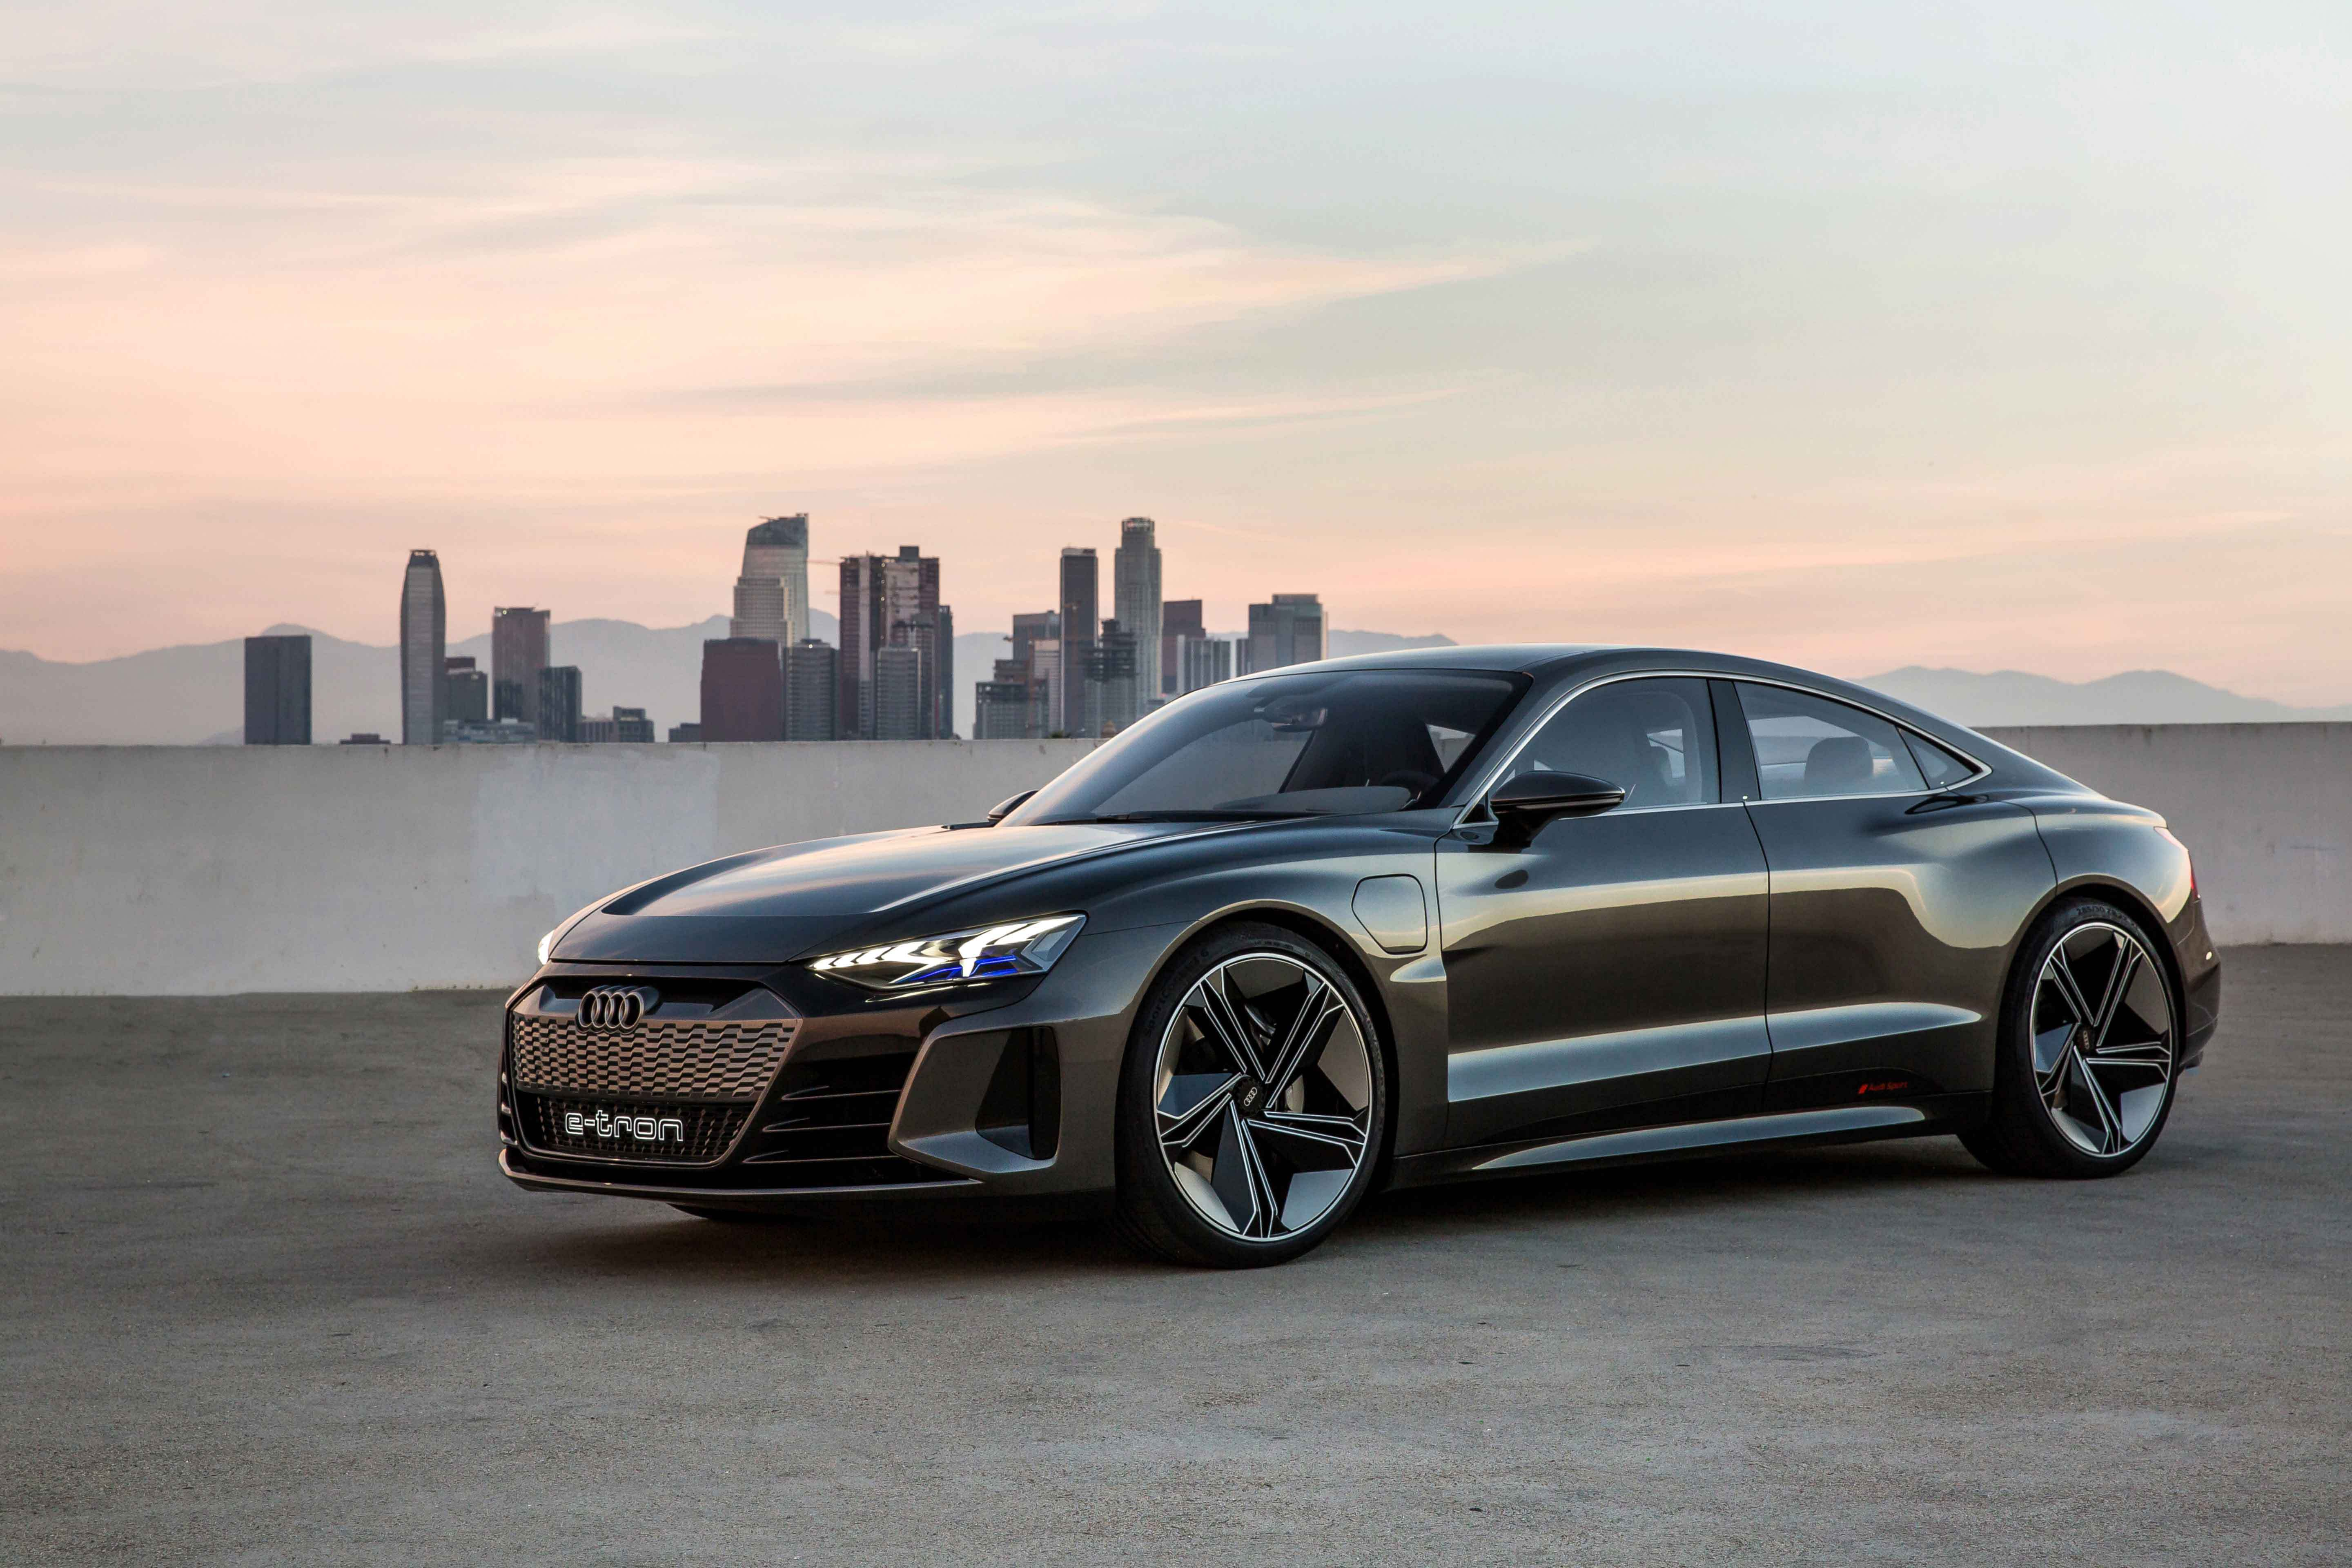 E Full In New Leading Role For Electric Performance The Audi E Tron Gt